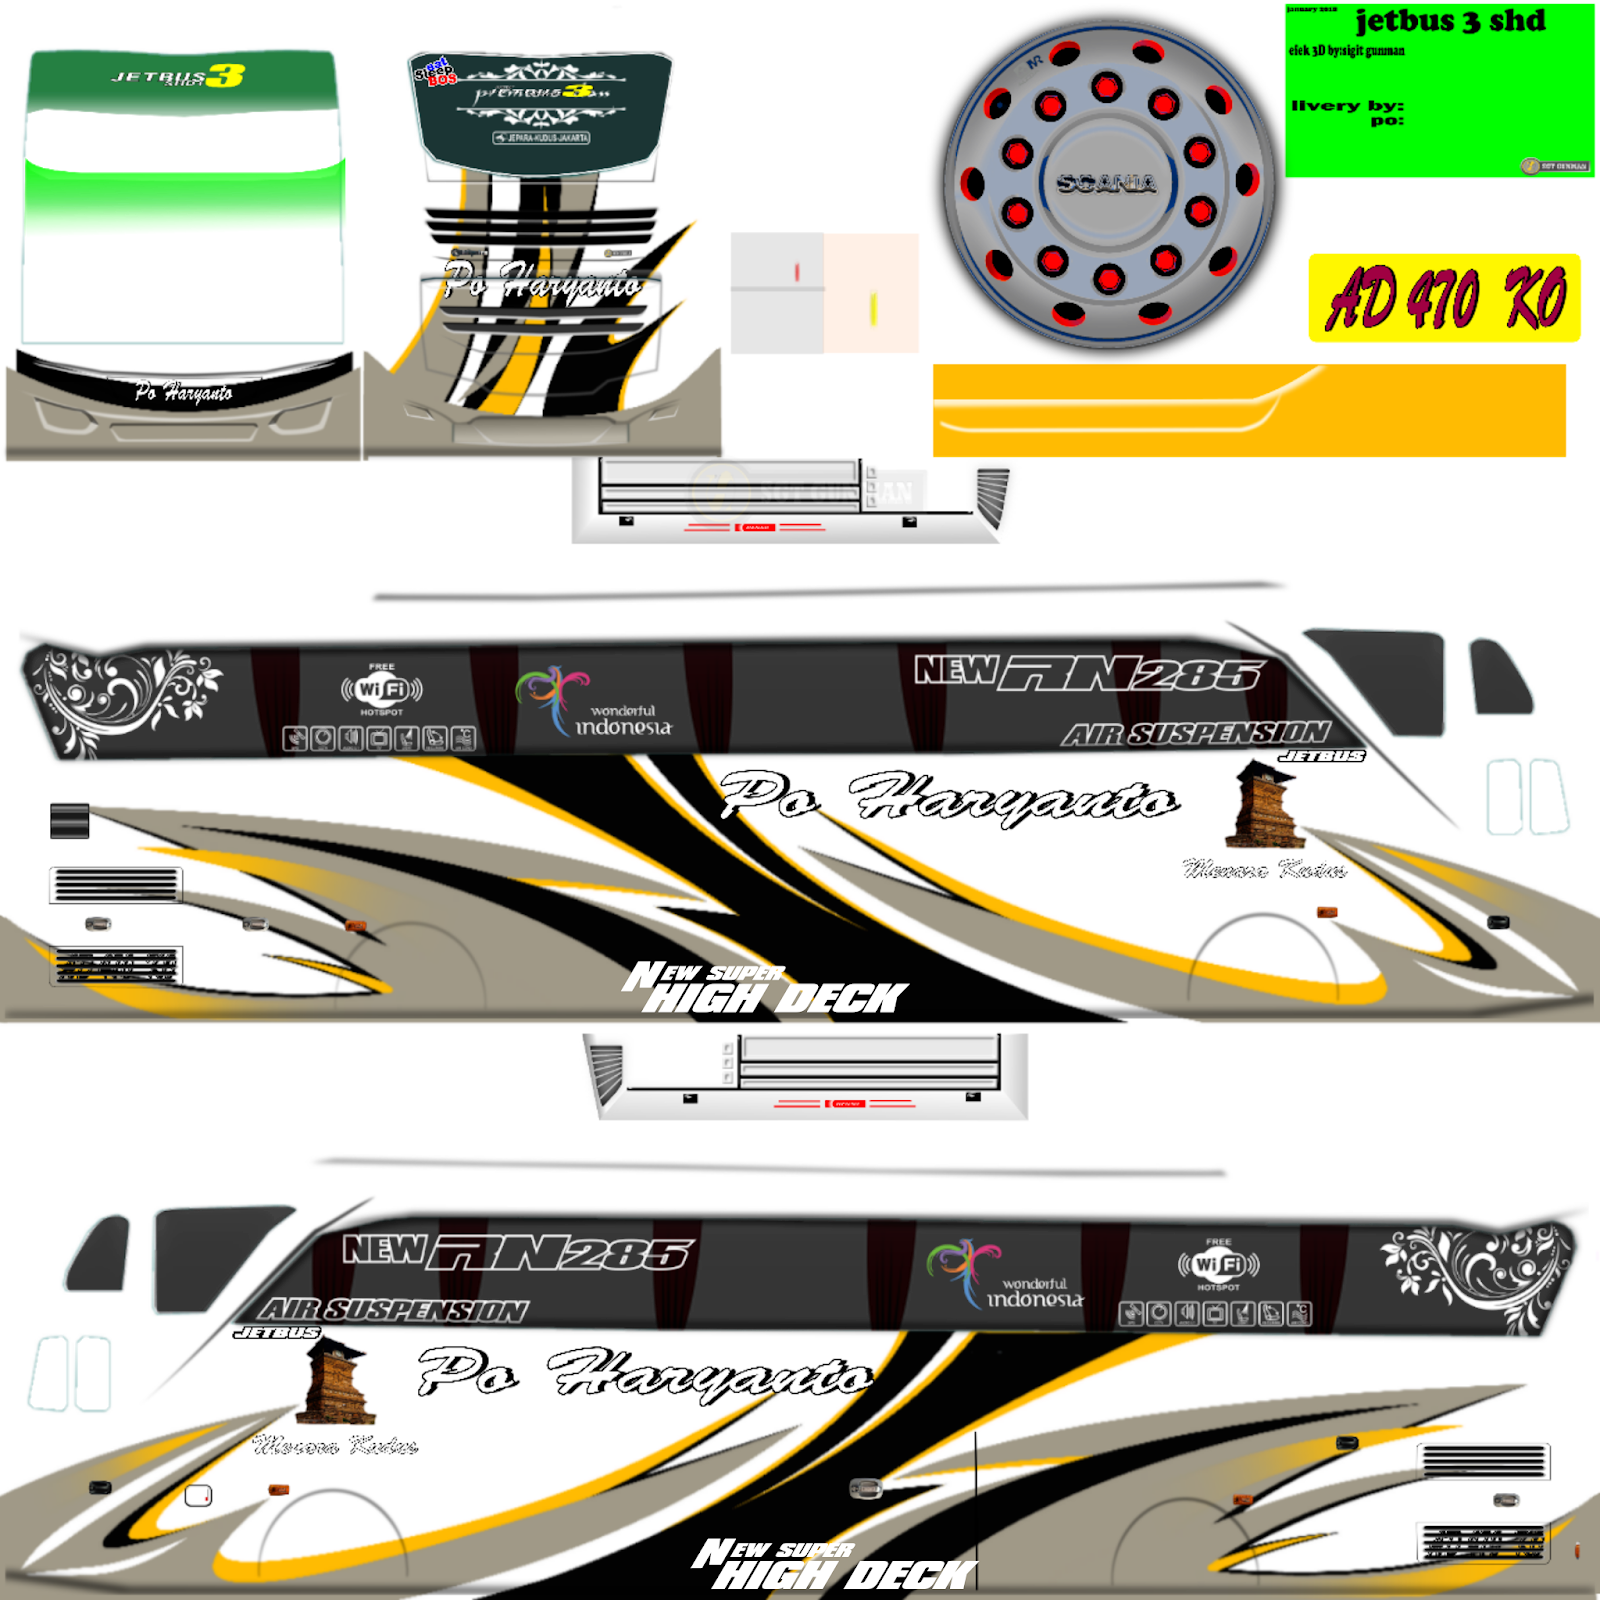 Summary Livery Bus Persib Baru Png Images Www Stargate